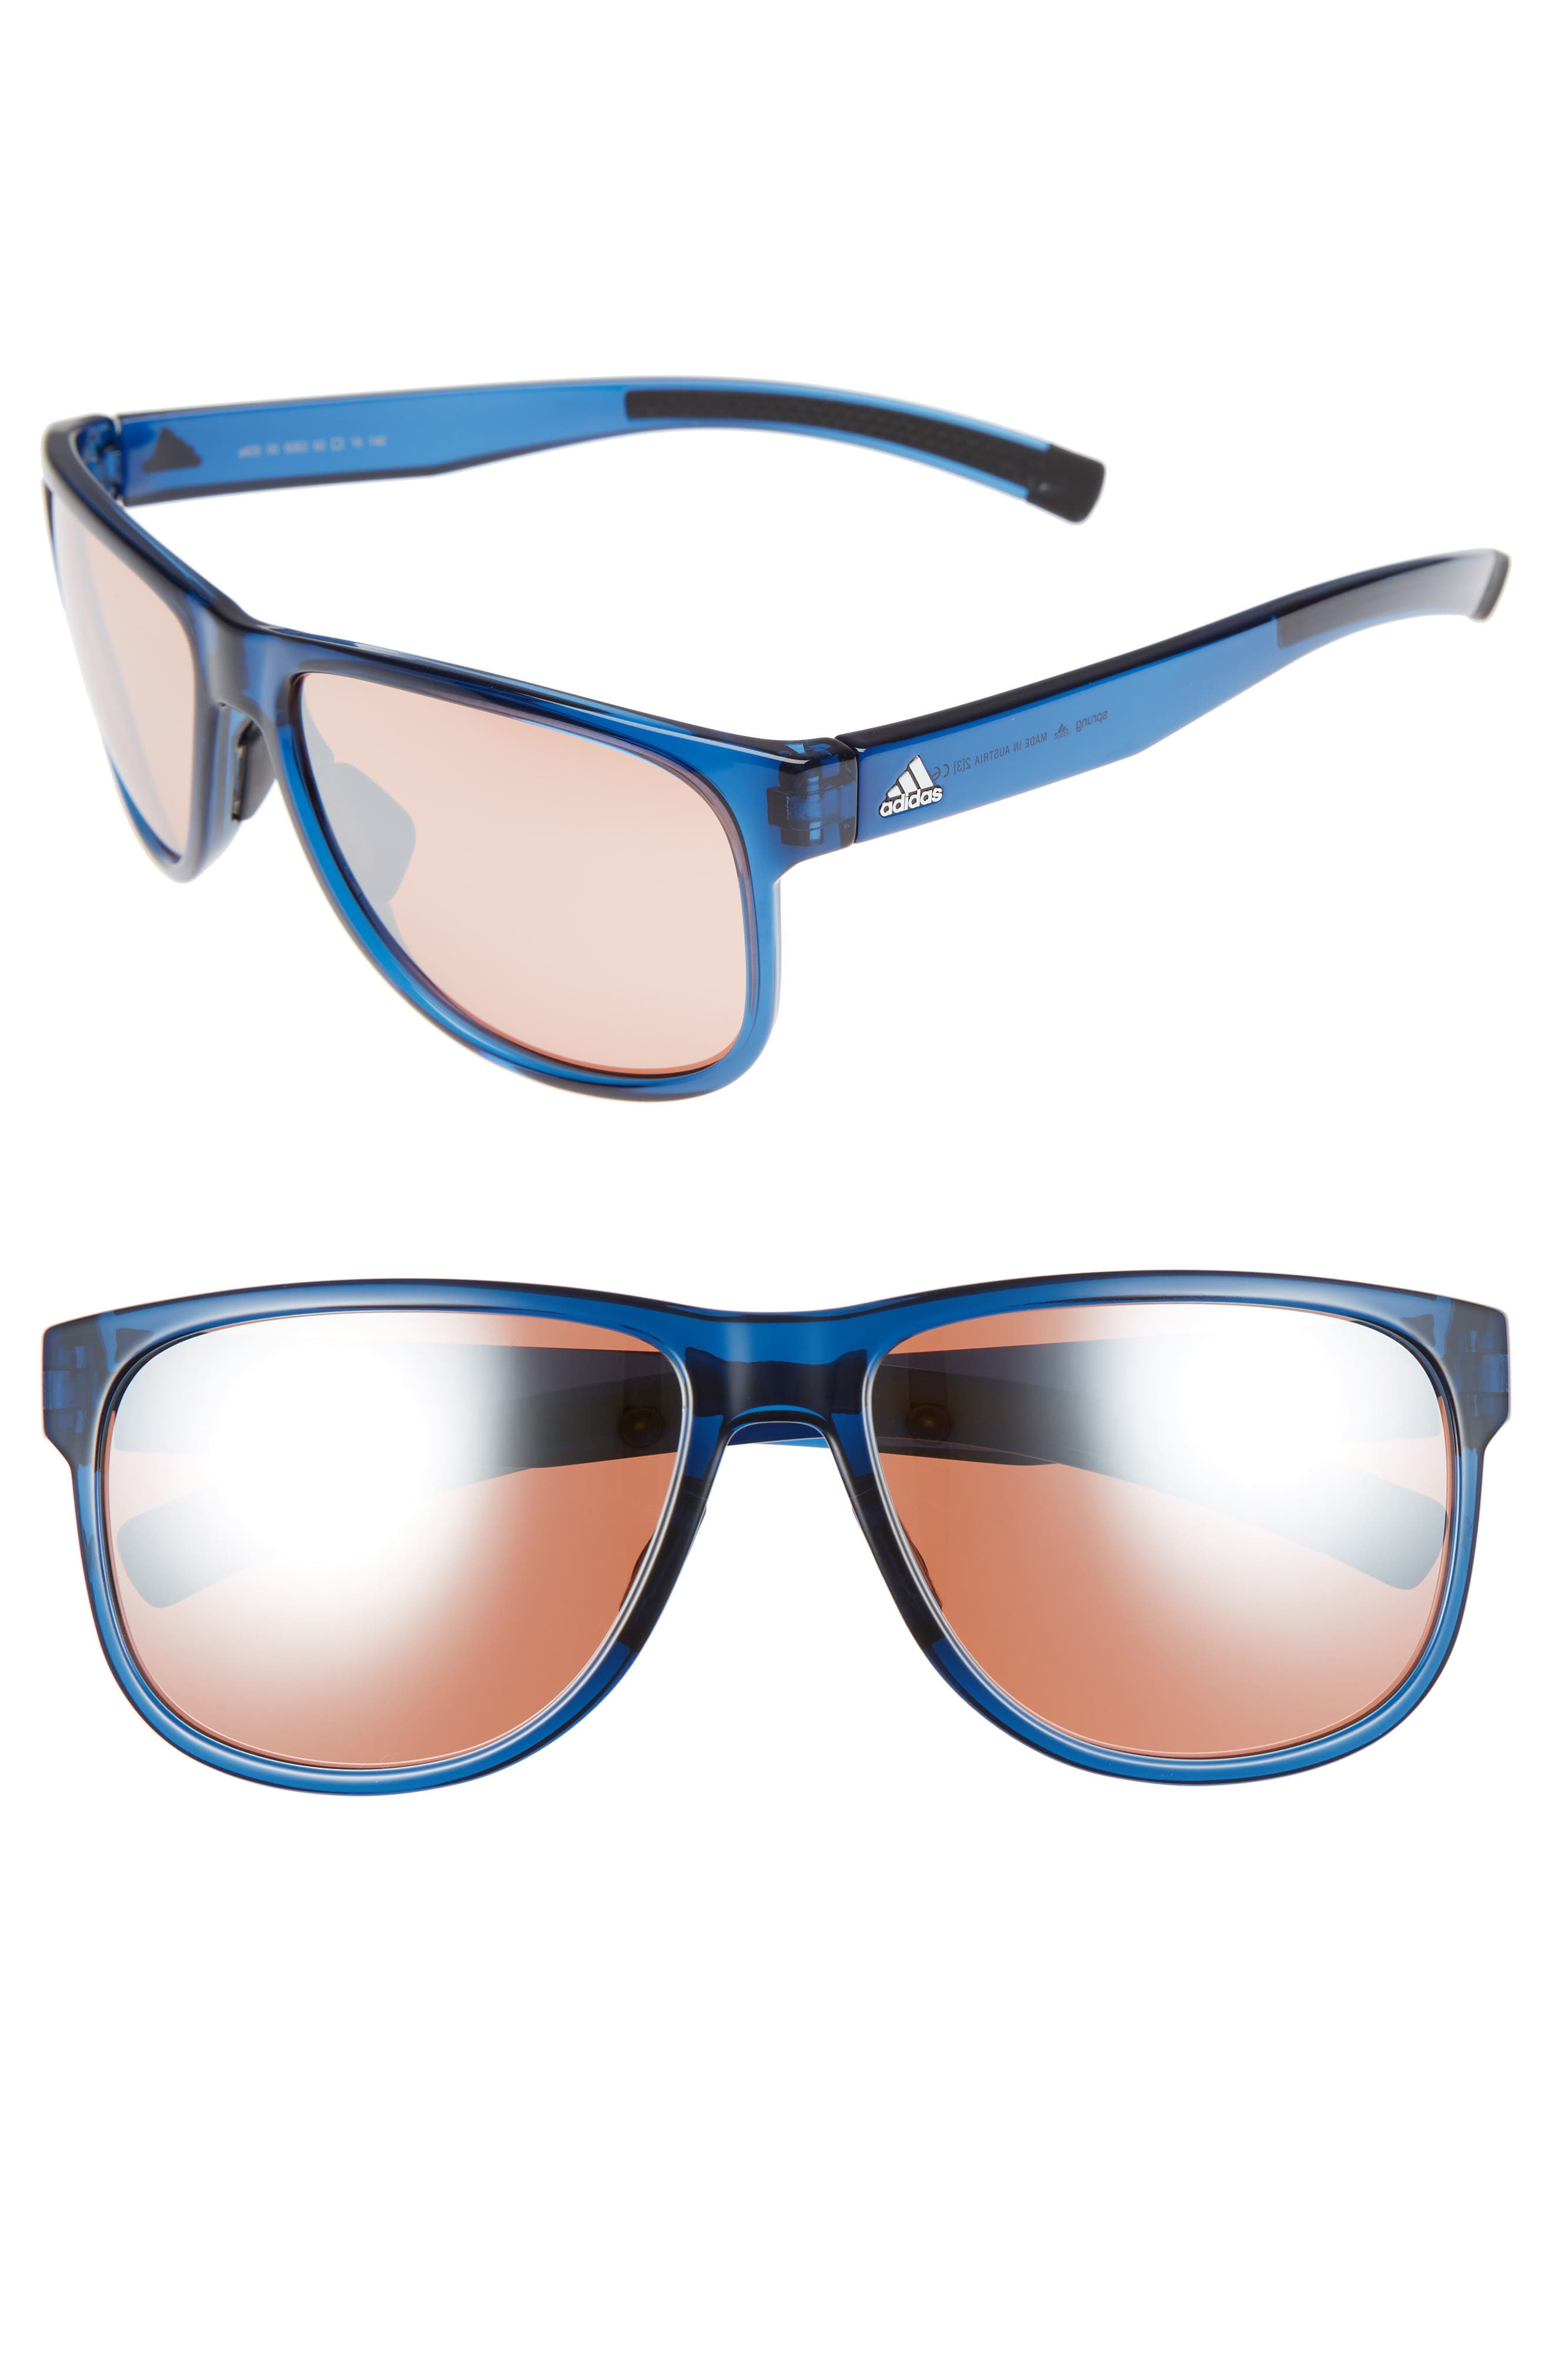 Sprung 60mm Sunglasses,                         Main,                         color, 400